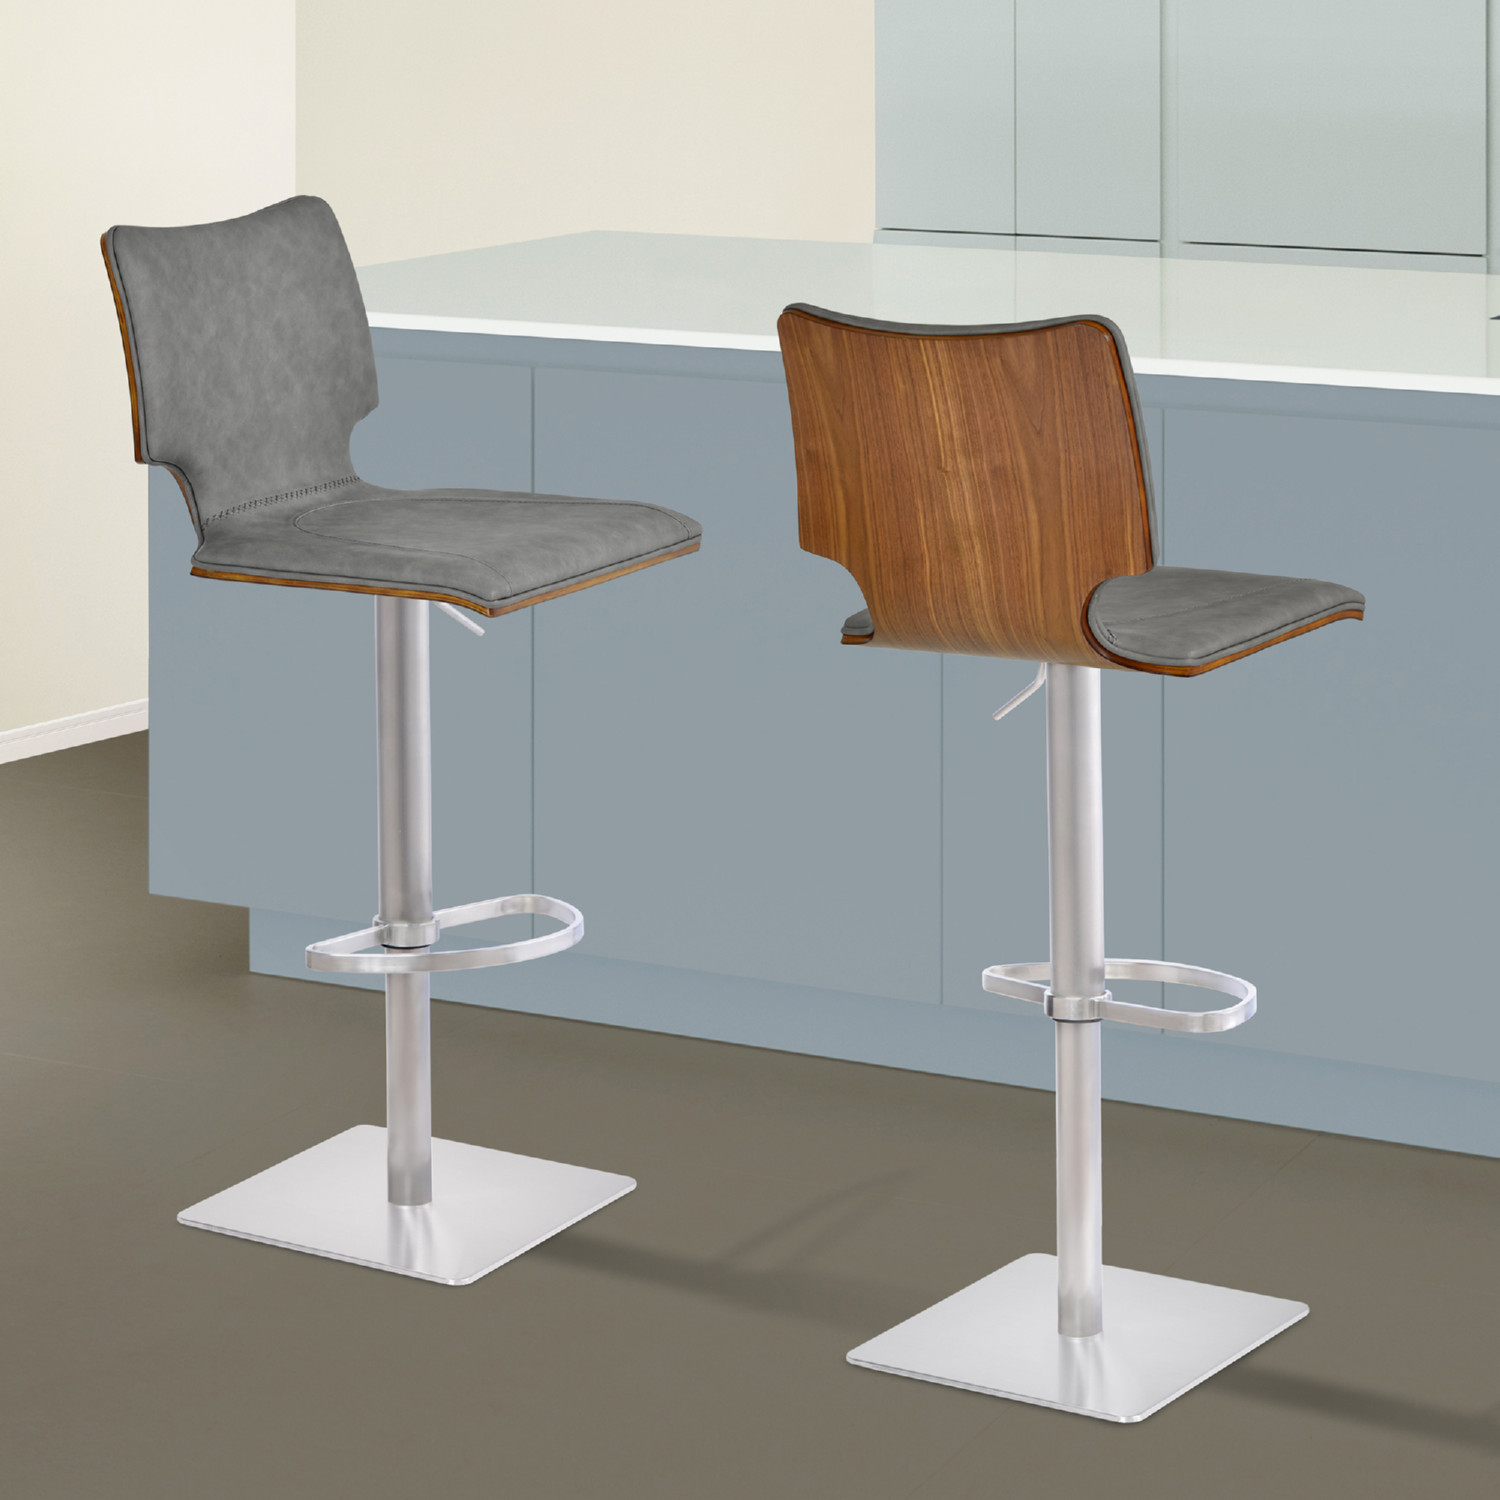 Excellent Sydney Adj Bar Stool In Brushed Stainless Grey Leatherette Walnut By Armen Living Ibusinesslaw Wood Chair Design Ideas Ibusinesslaworg